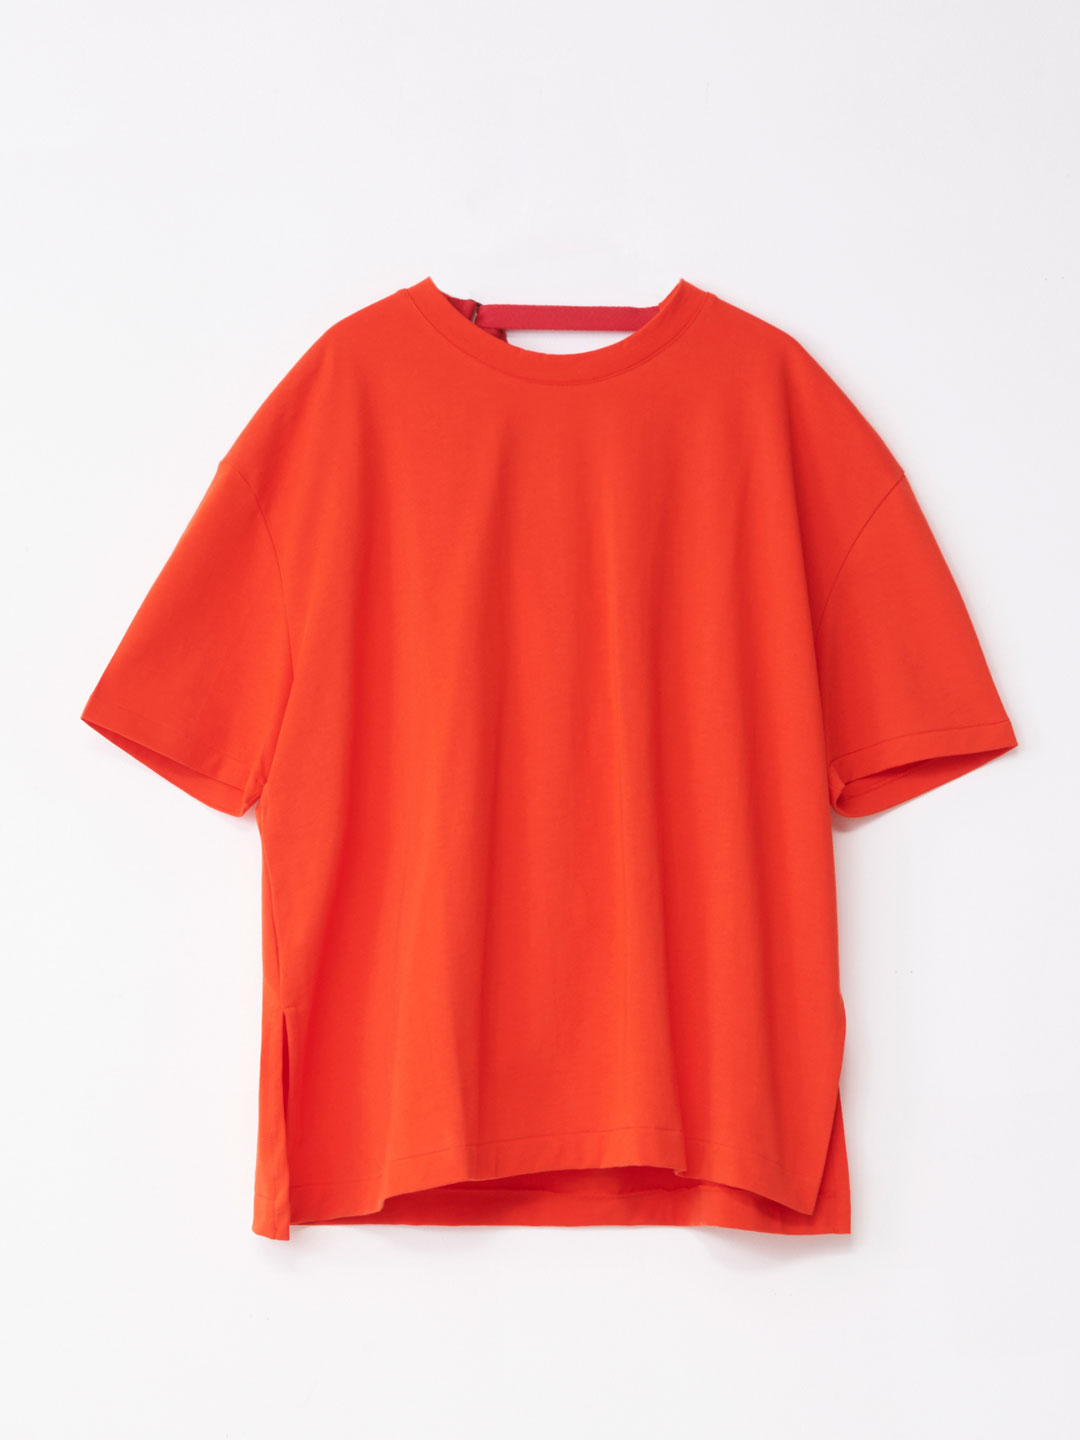 Draped Back Tee - Red【LIMITED ITEM】